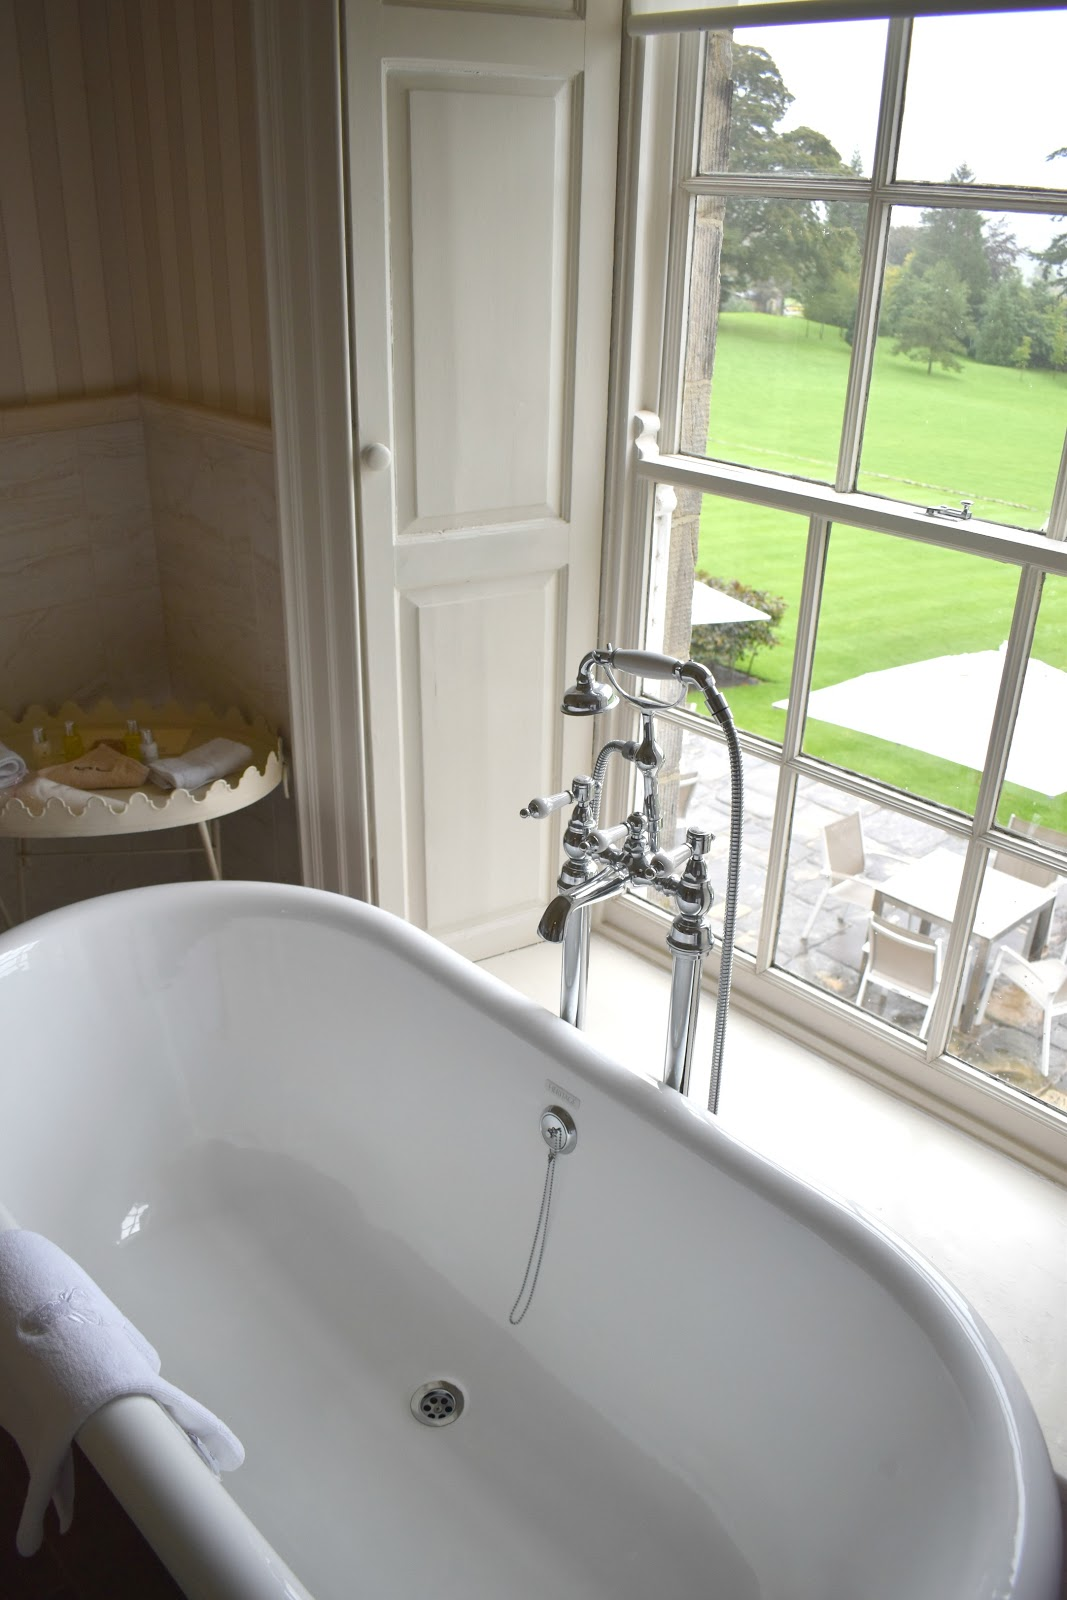 The Best Boutique Hotel in Northumberland